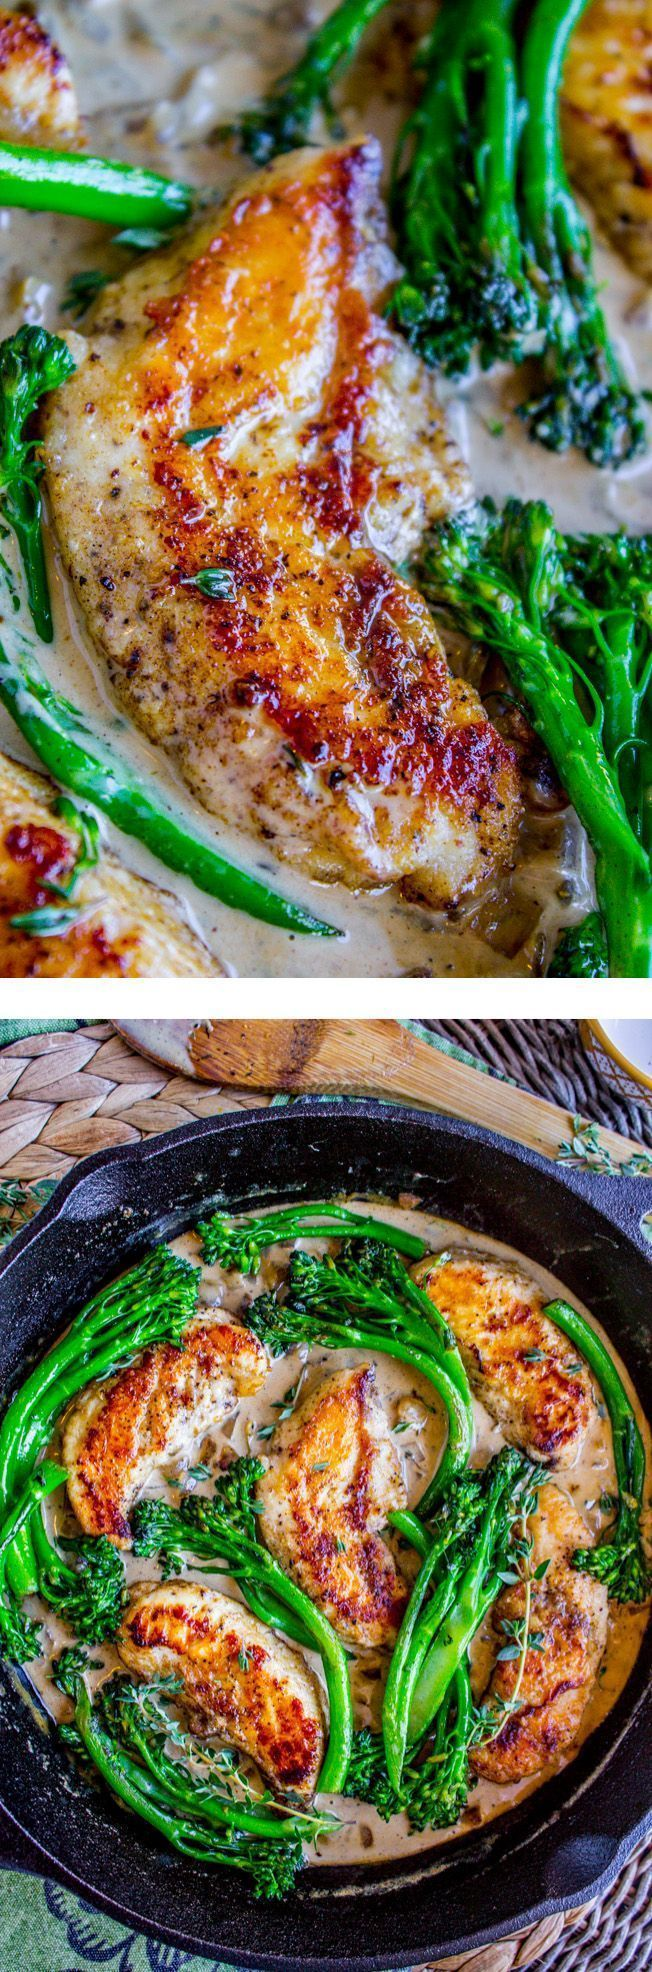 Pan-Seared Chicken & Broccolini in Creamy Mustard Sauce from The Food Charlatan. This easy chicken tenderloin recipe is a great weeknight dinner! It seriously tastes restaurant quality. The creamy mustard sauce compliments the broccolini perfectly! It is